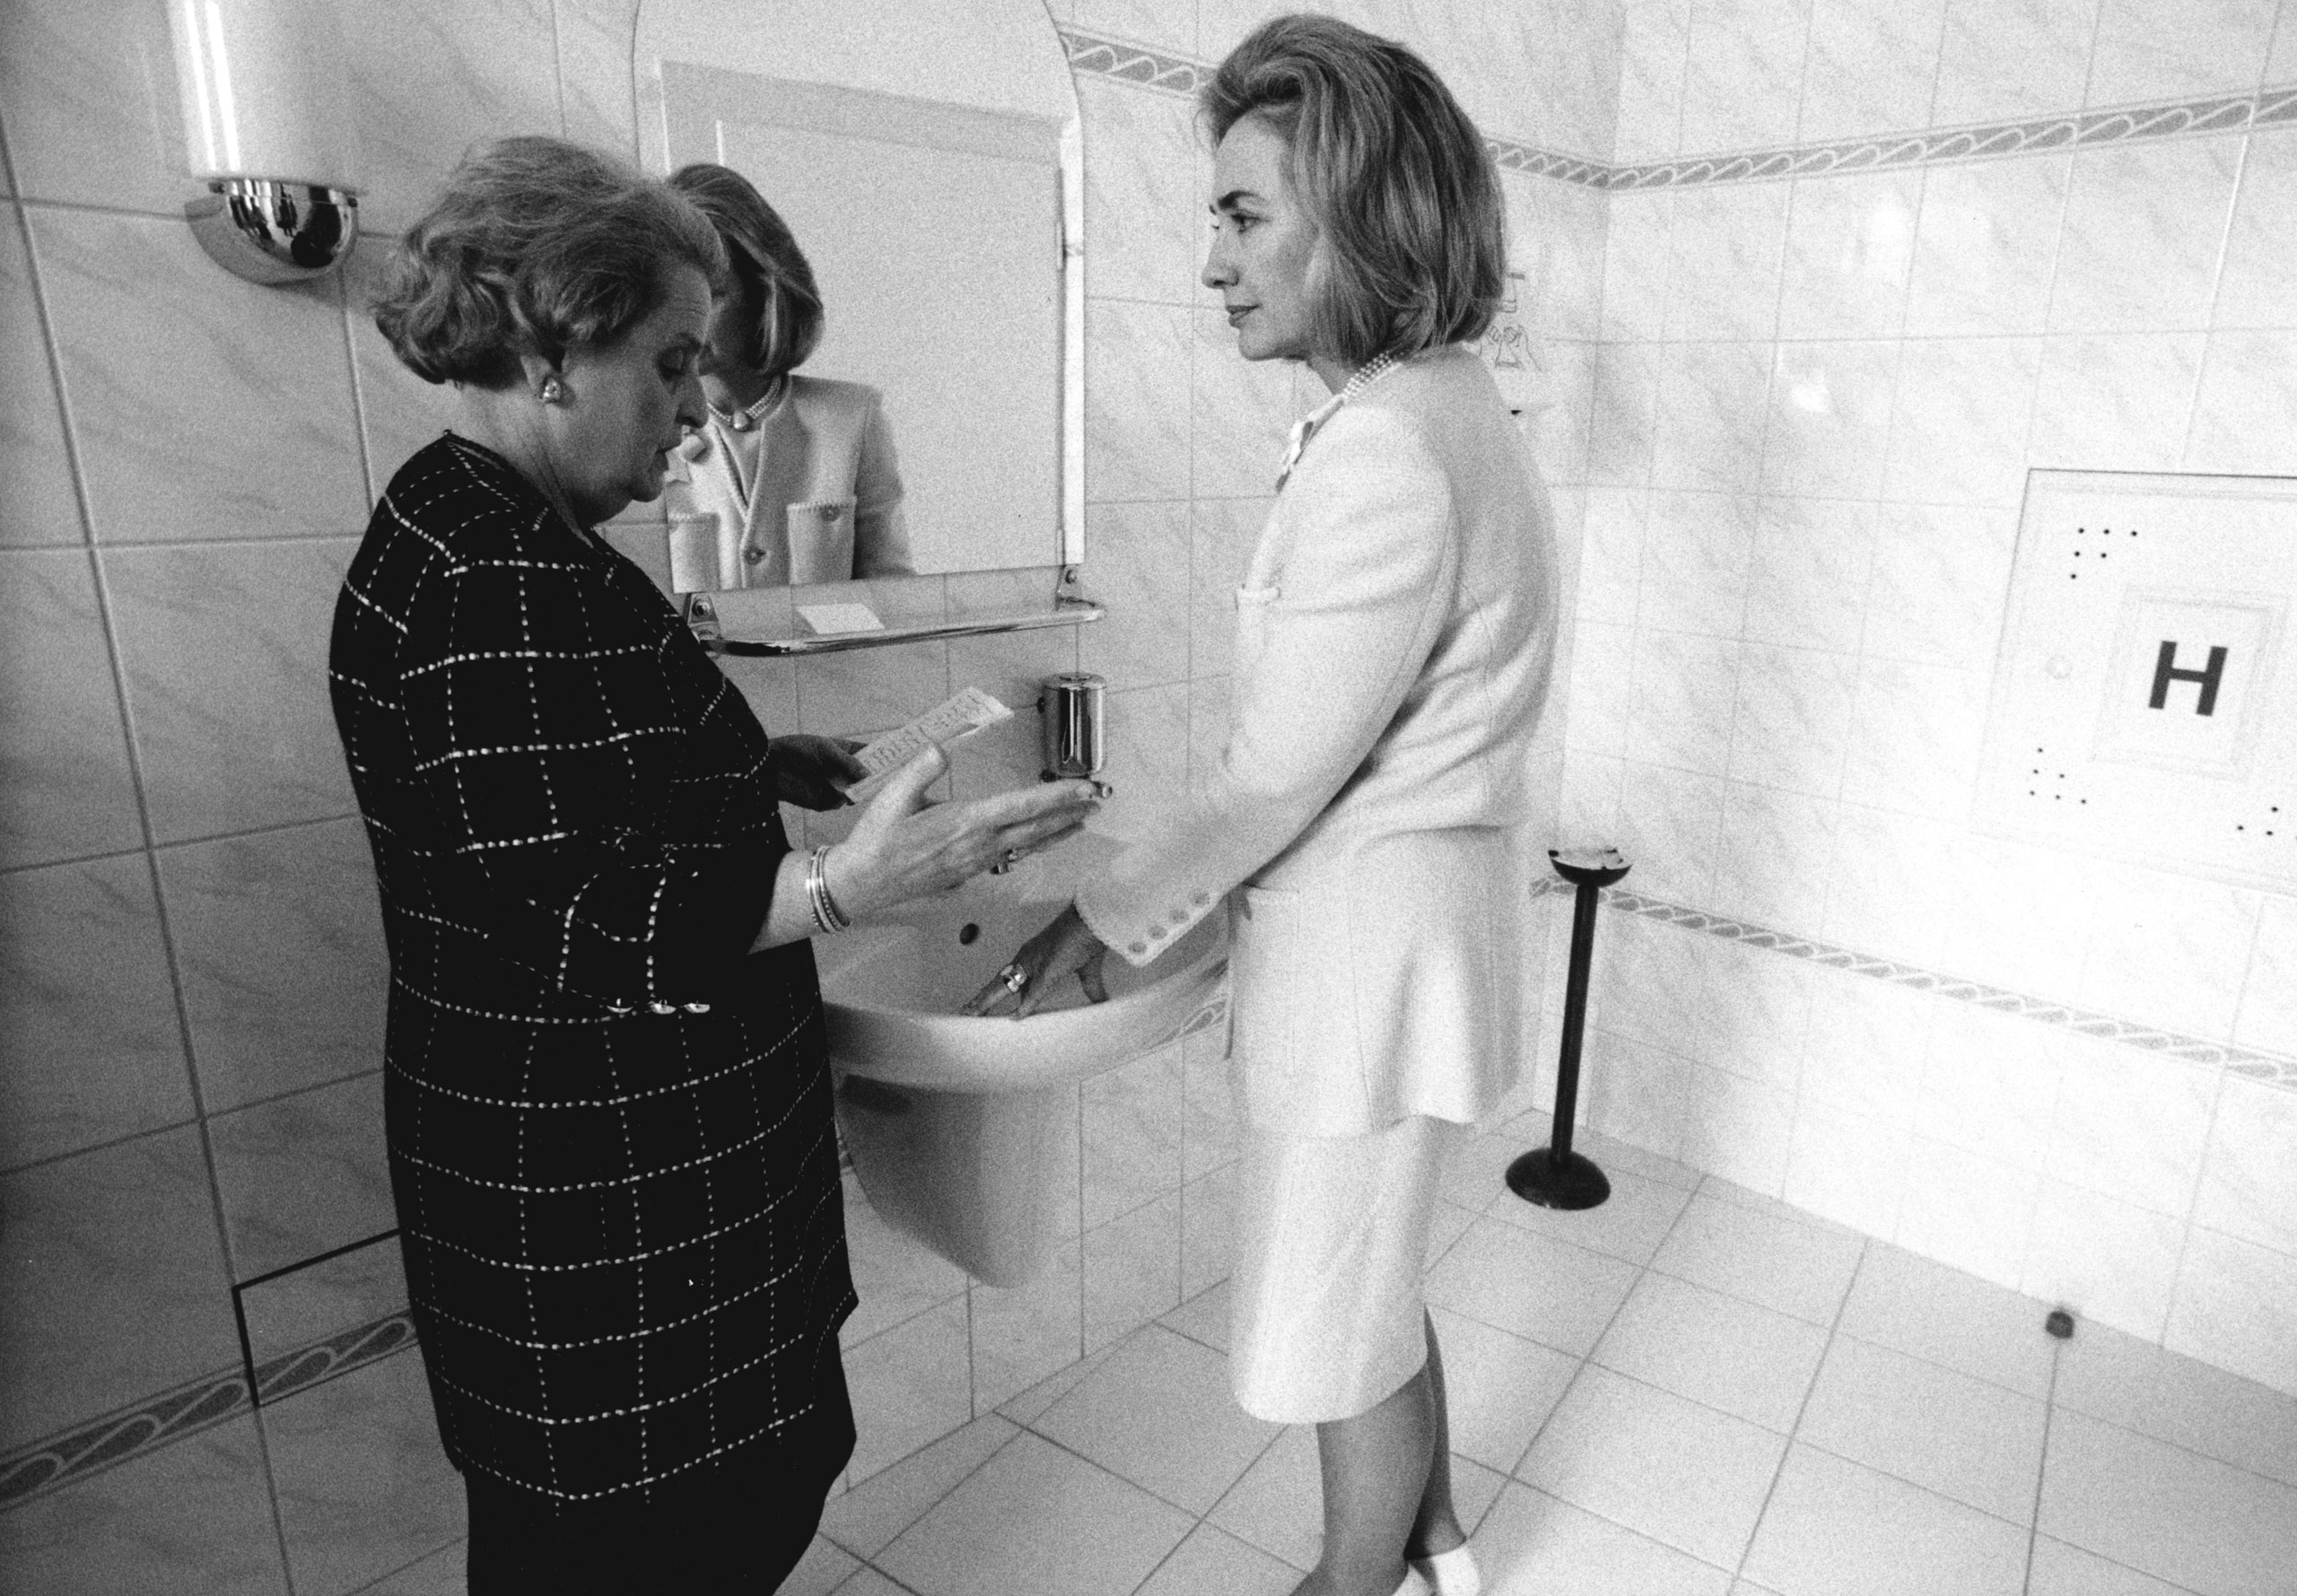 Secretary of state Madeleine Albright briefs First Lady Hillary Clinton in a ladies room during a trip to Prague, 1997.